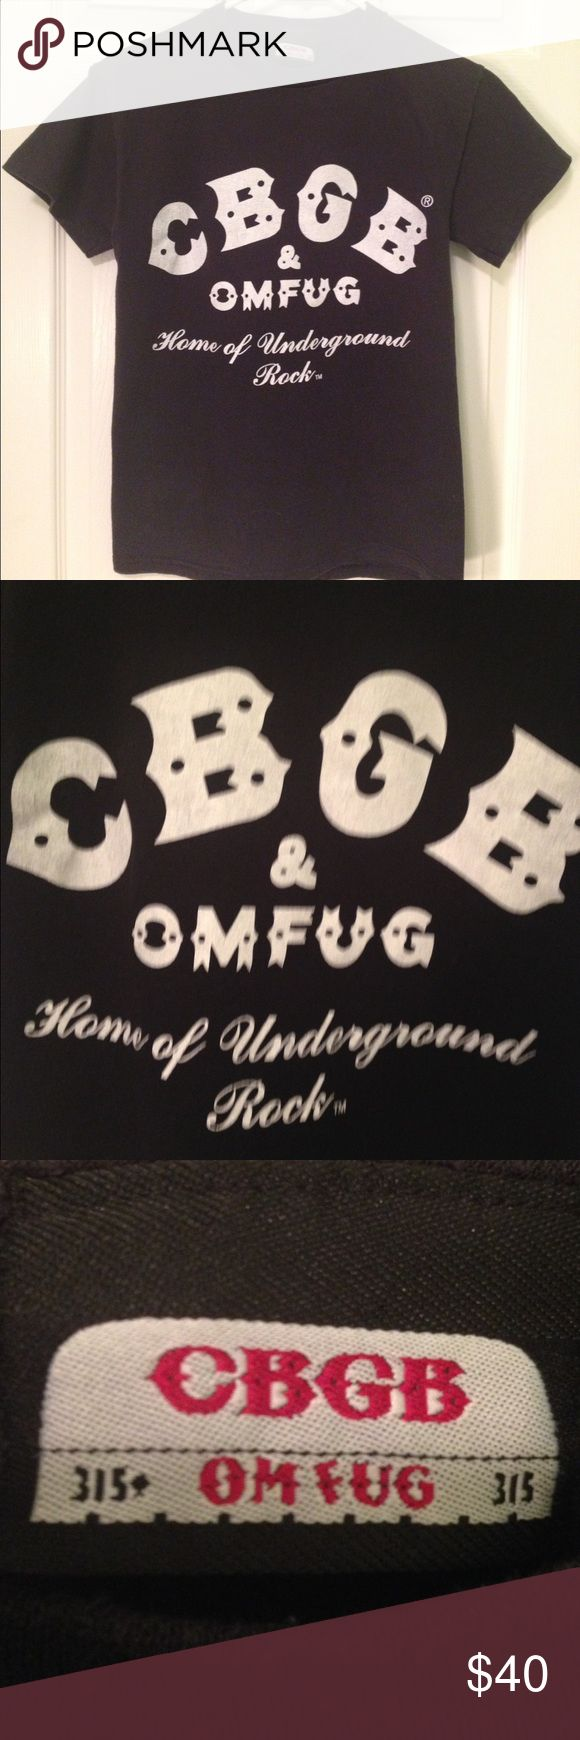 """Vintage 80's CBGB T-Shirt Vintage 8O's black CBGB t-shirt. CBGB & OMFUG Home of Underground Rock-the famous NYC club and home of punk rock bands like the Ramones, Blondie, and The Talking Heads. The size tag is long gone but the t-shirt fits like a small. Chest 34 """". Length 26"""". Very good condtion-the letters don't have any cracks. CBGB & OMFUG Tops Tees - Short Sleeve"""